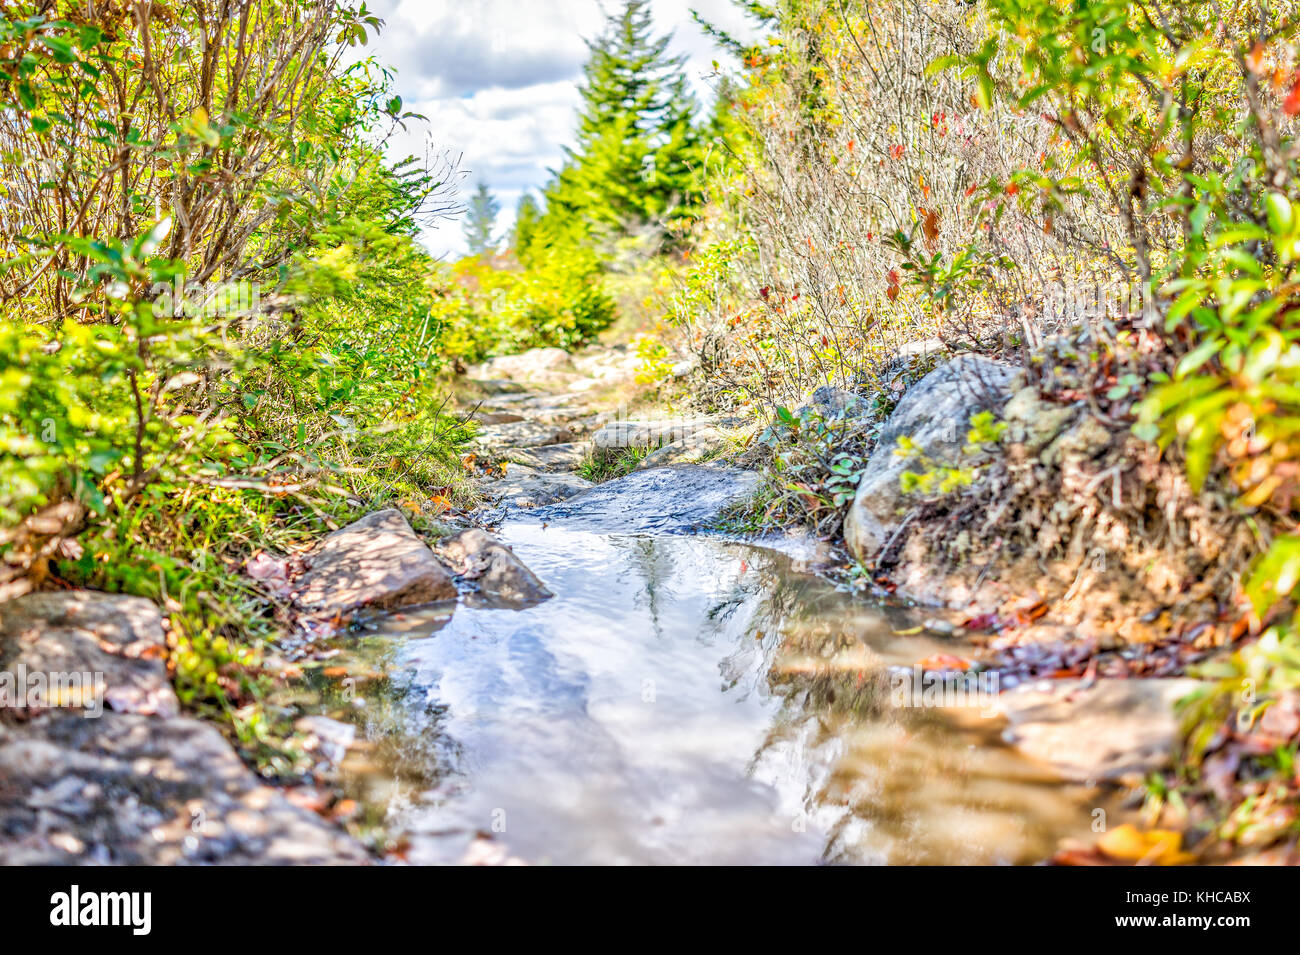 Large puddle on boggy bog area hiking trail in Dolly Sods, West Virginia between bushes and calm reflection closeup Stock Photo